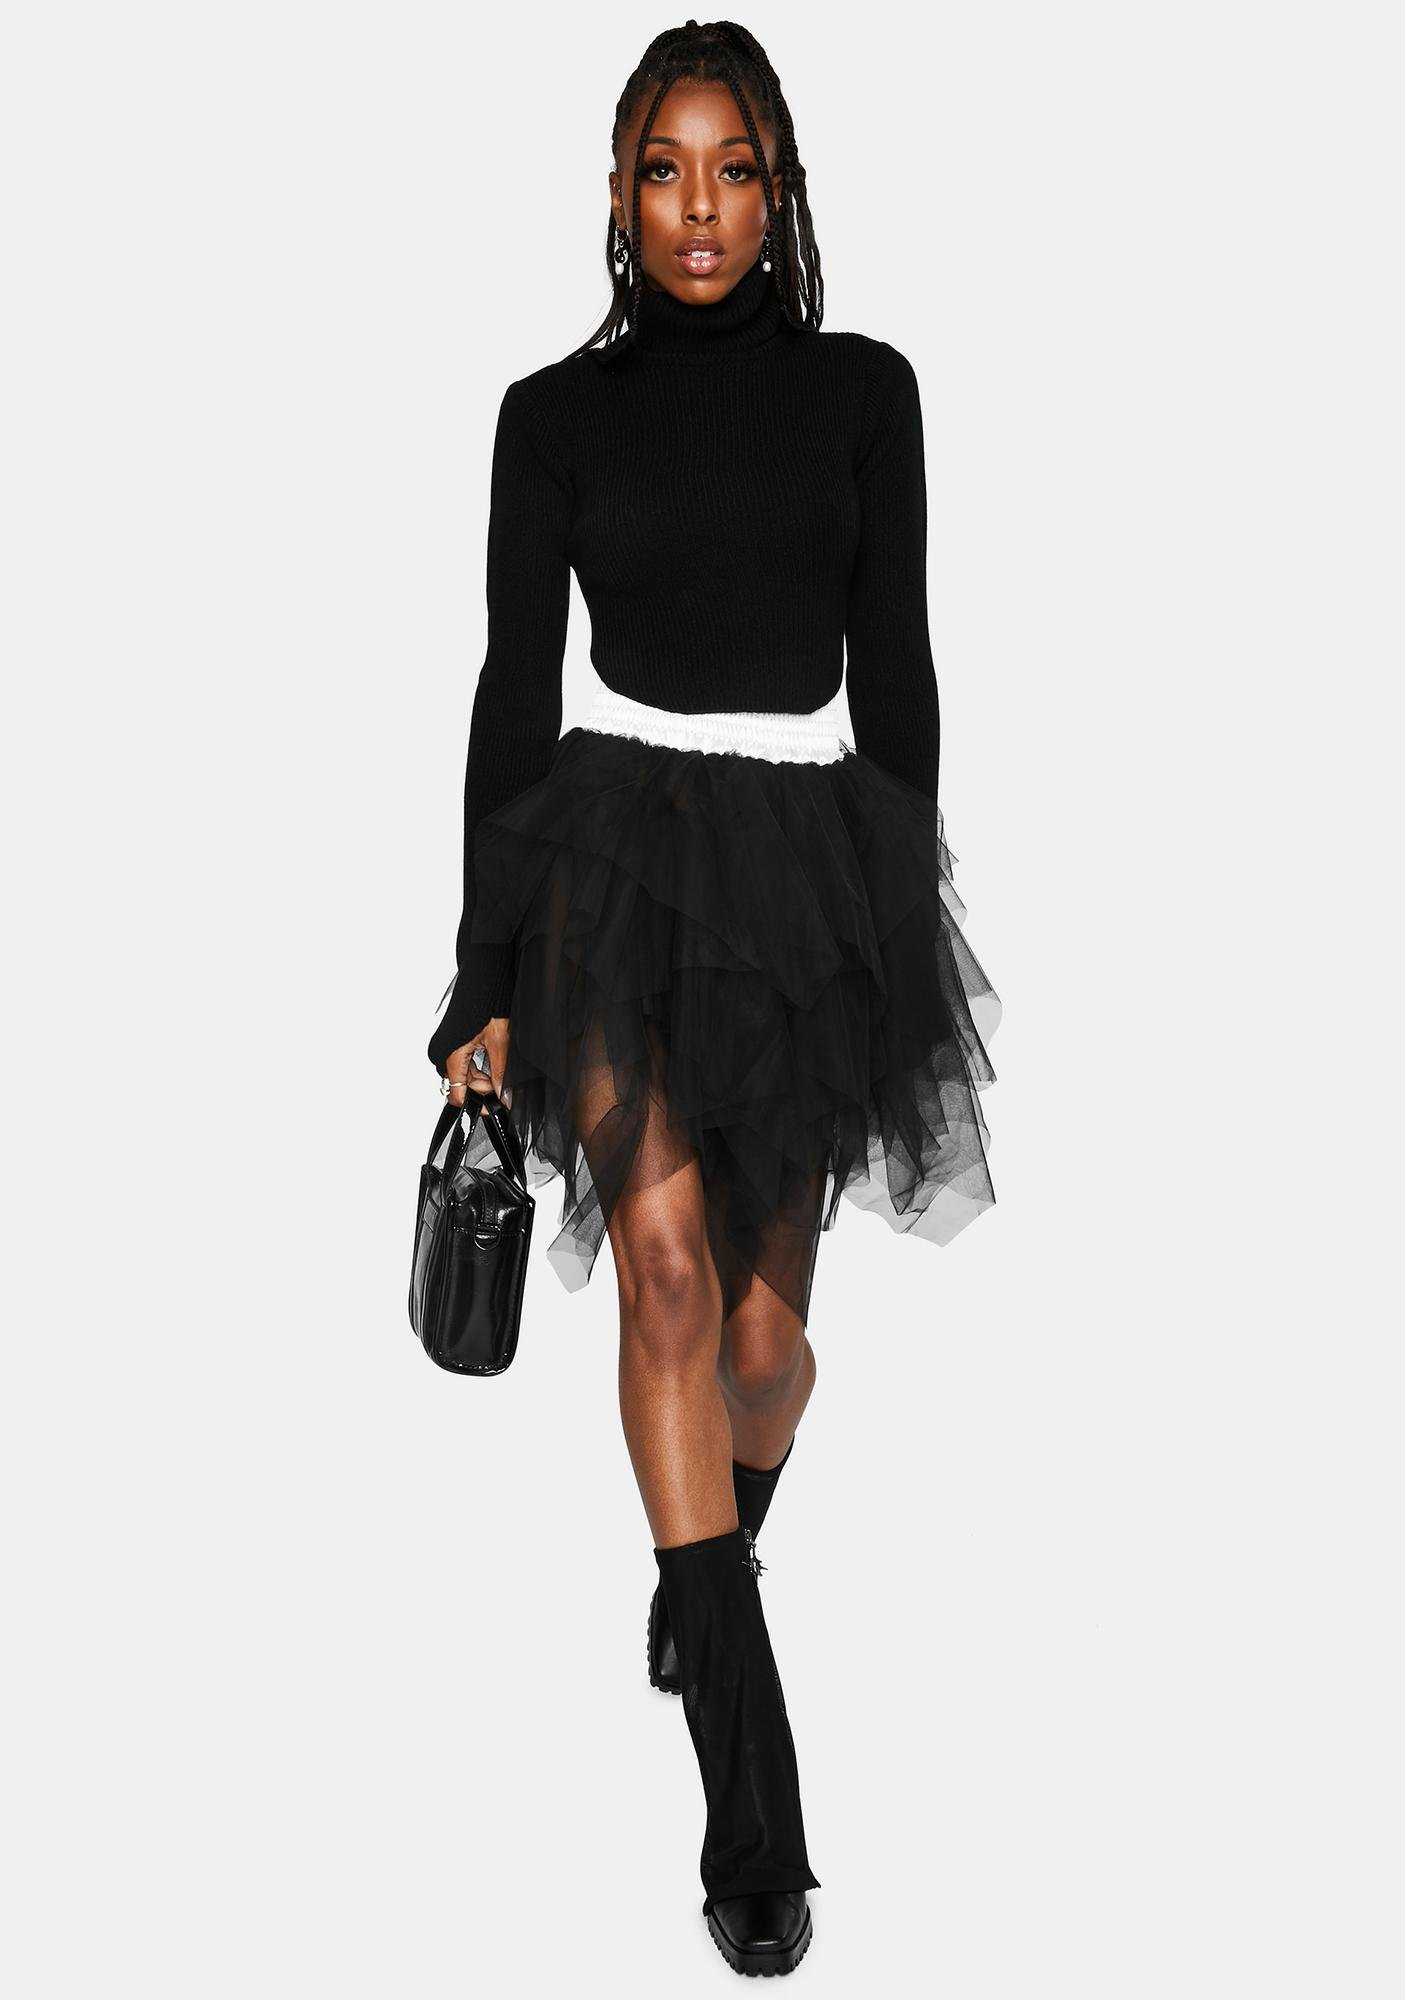 Kiki Riki Twin Flames Shredded Tulle Mini Skirt